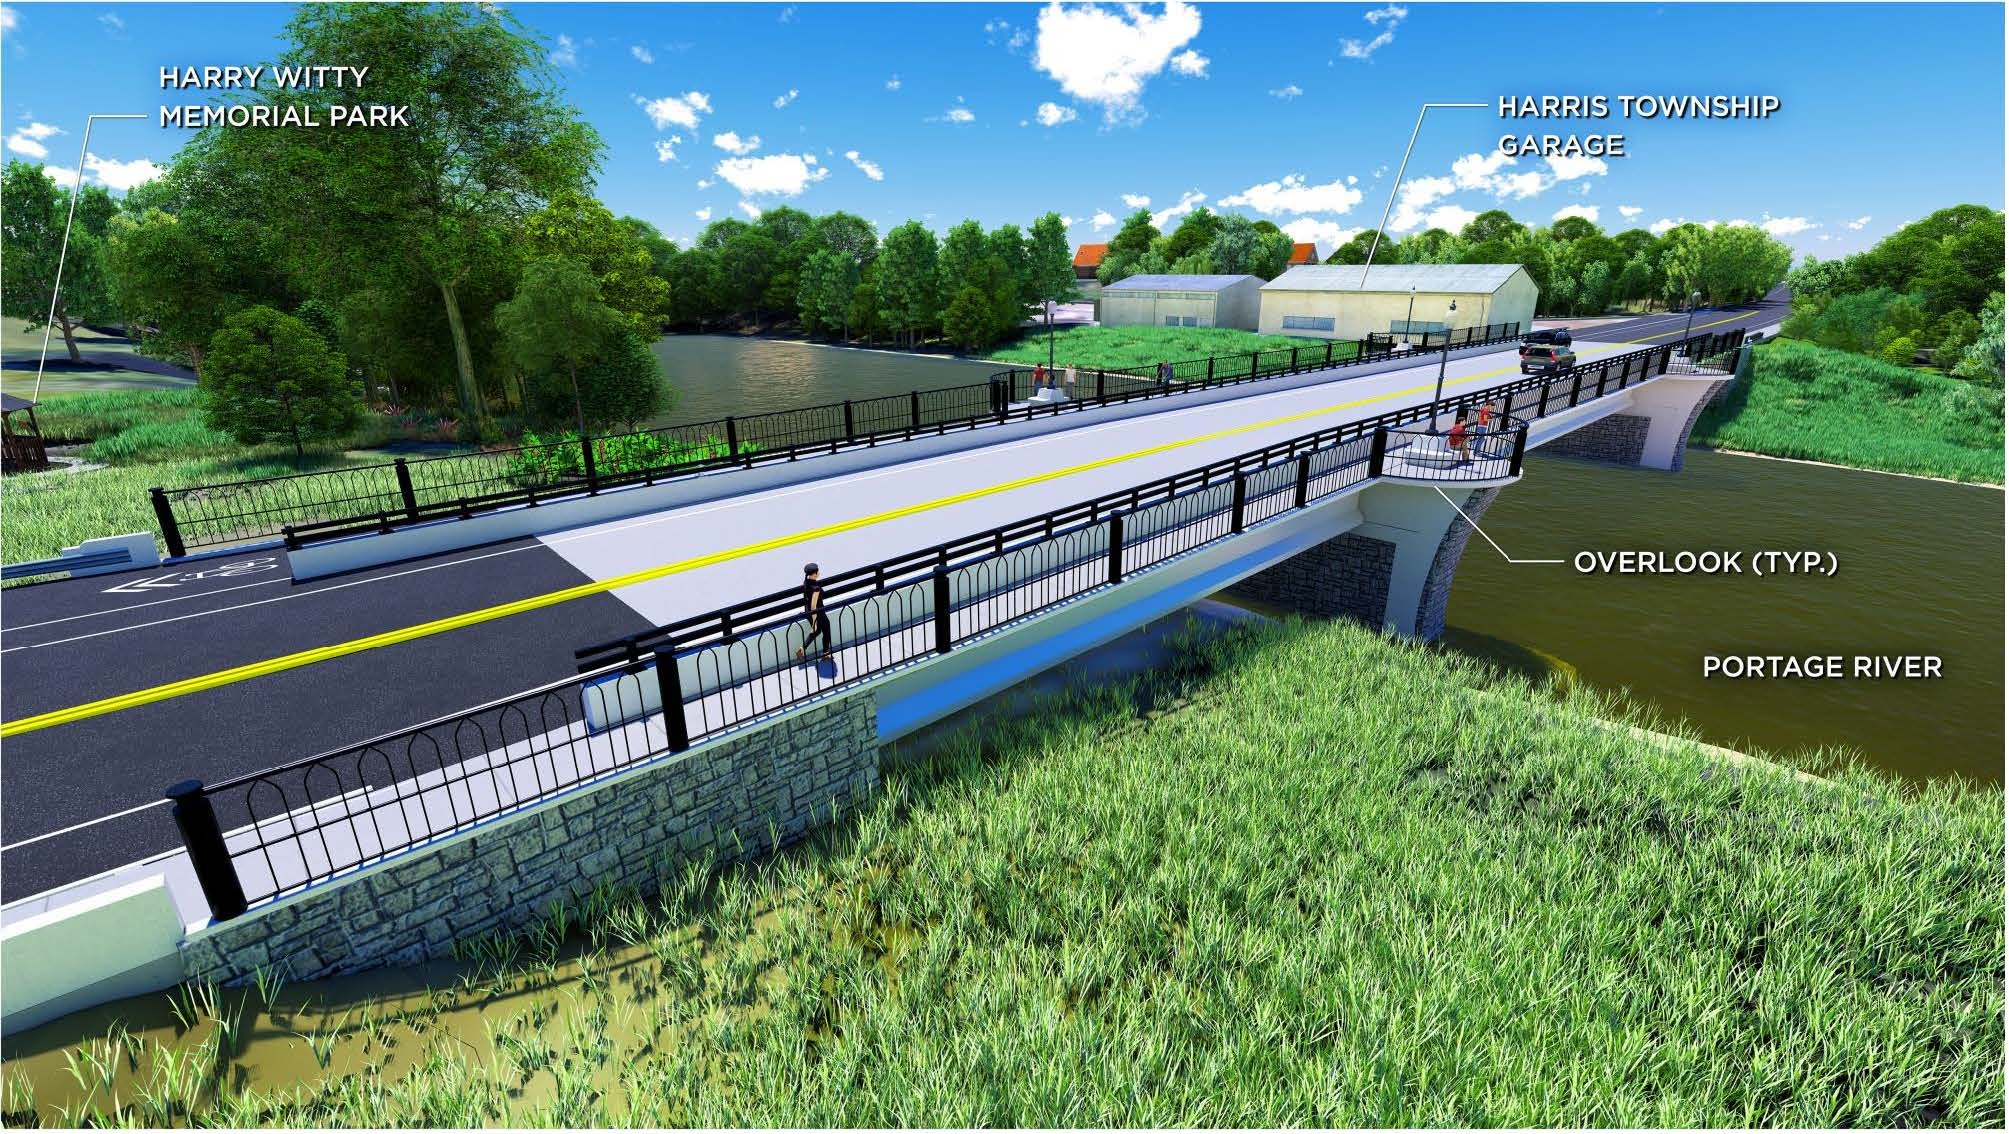 A rendering of the State Rt. 51 bridge over the Portage River in Elmore. (Submitted by ODOT)